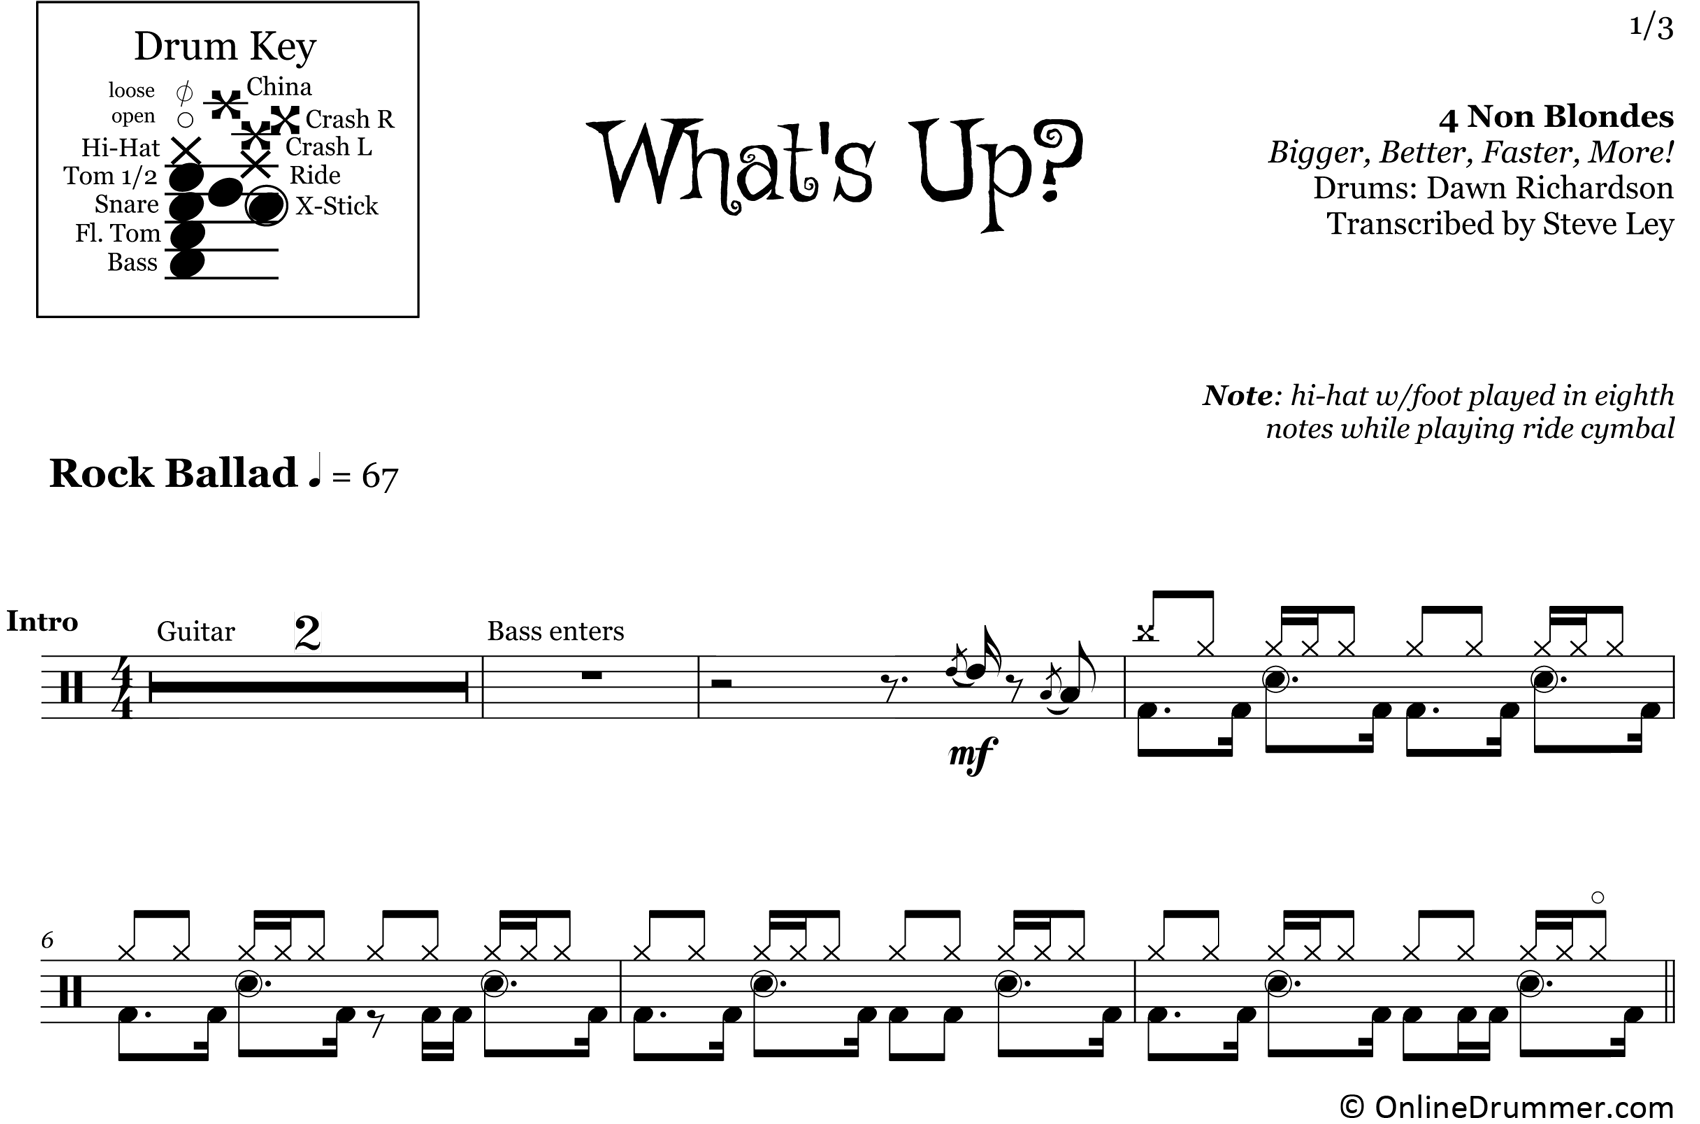 What's Up - 4 Non Blondes - Drum Sheet Music